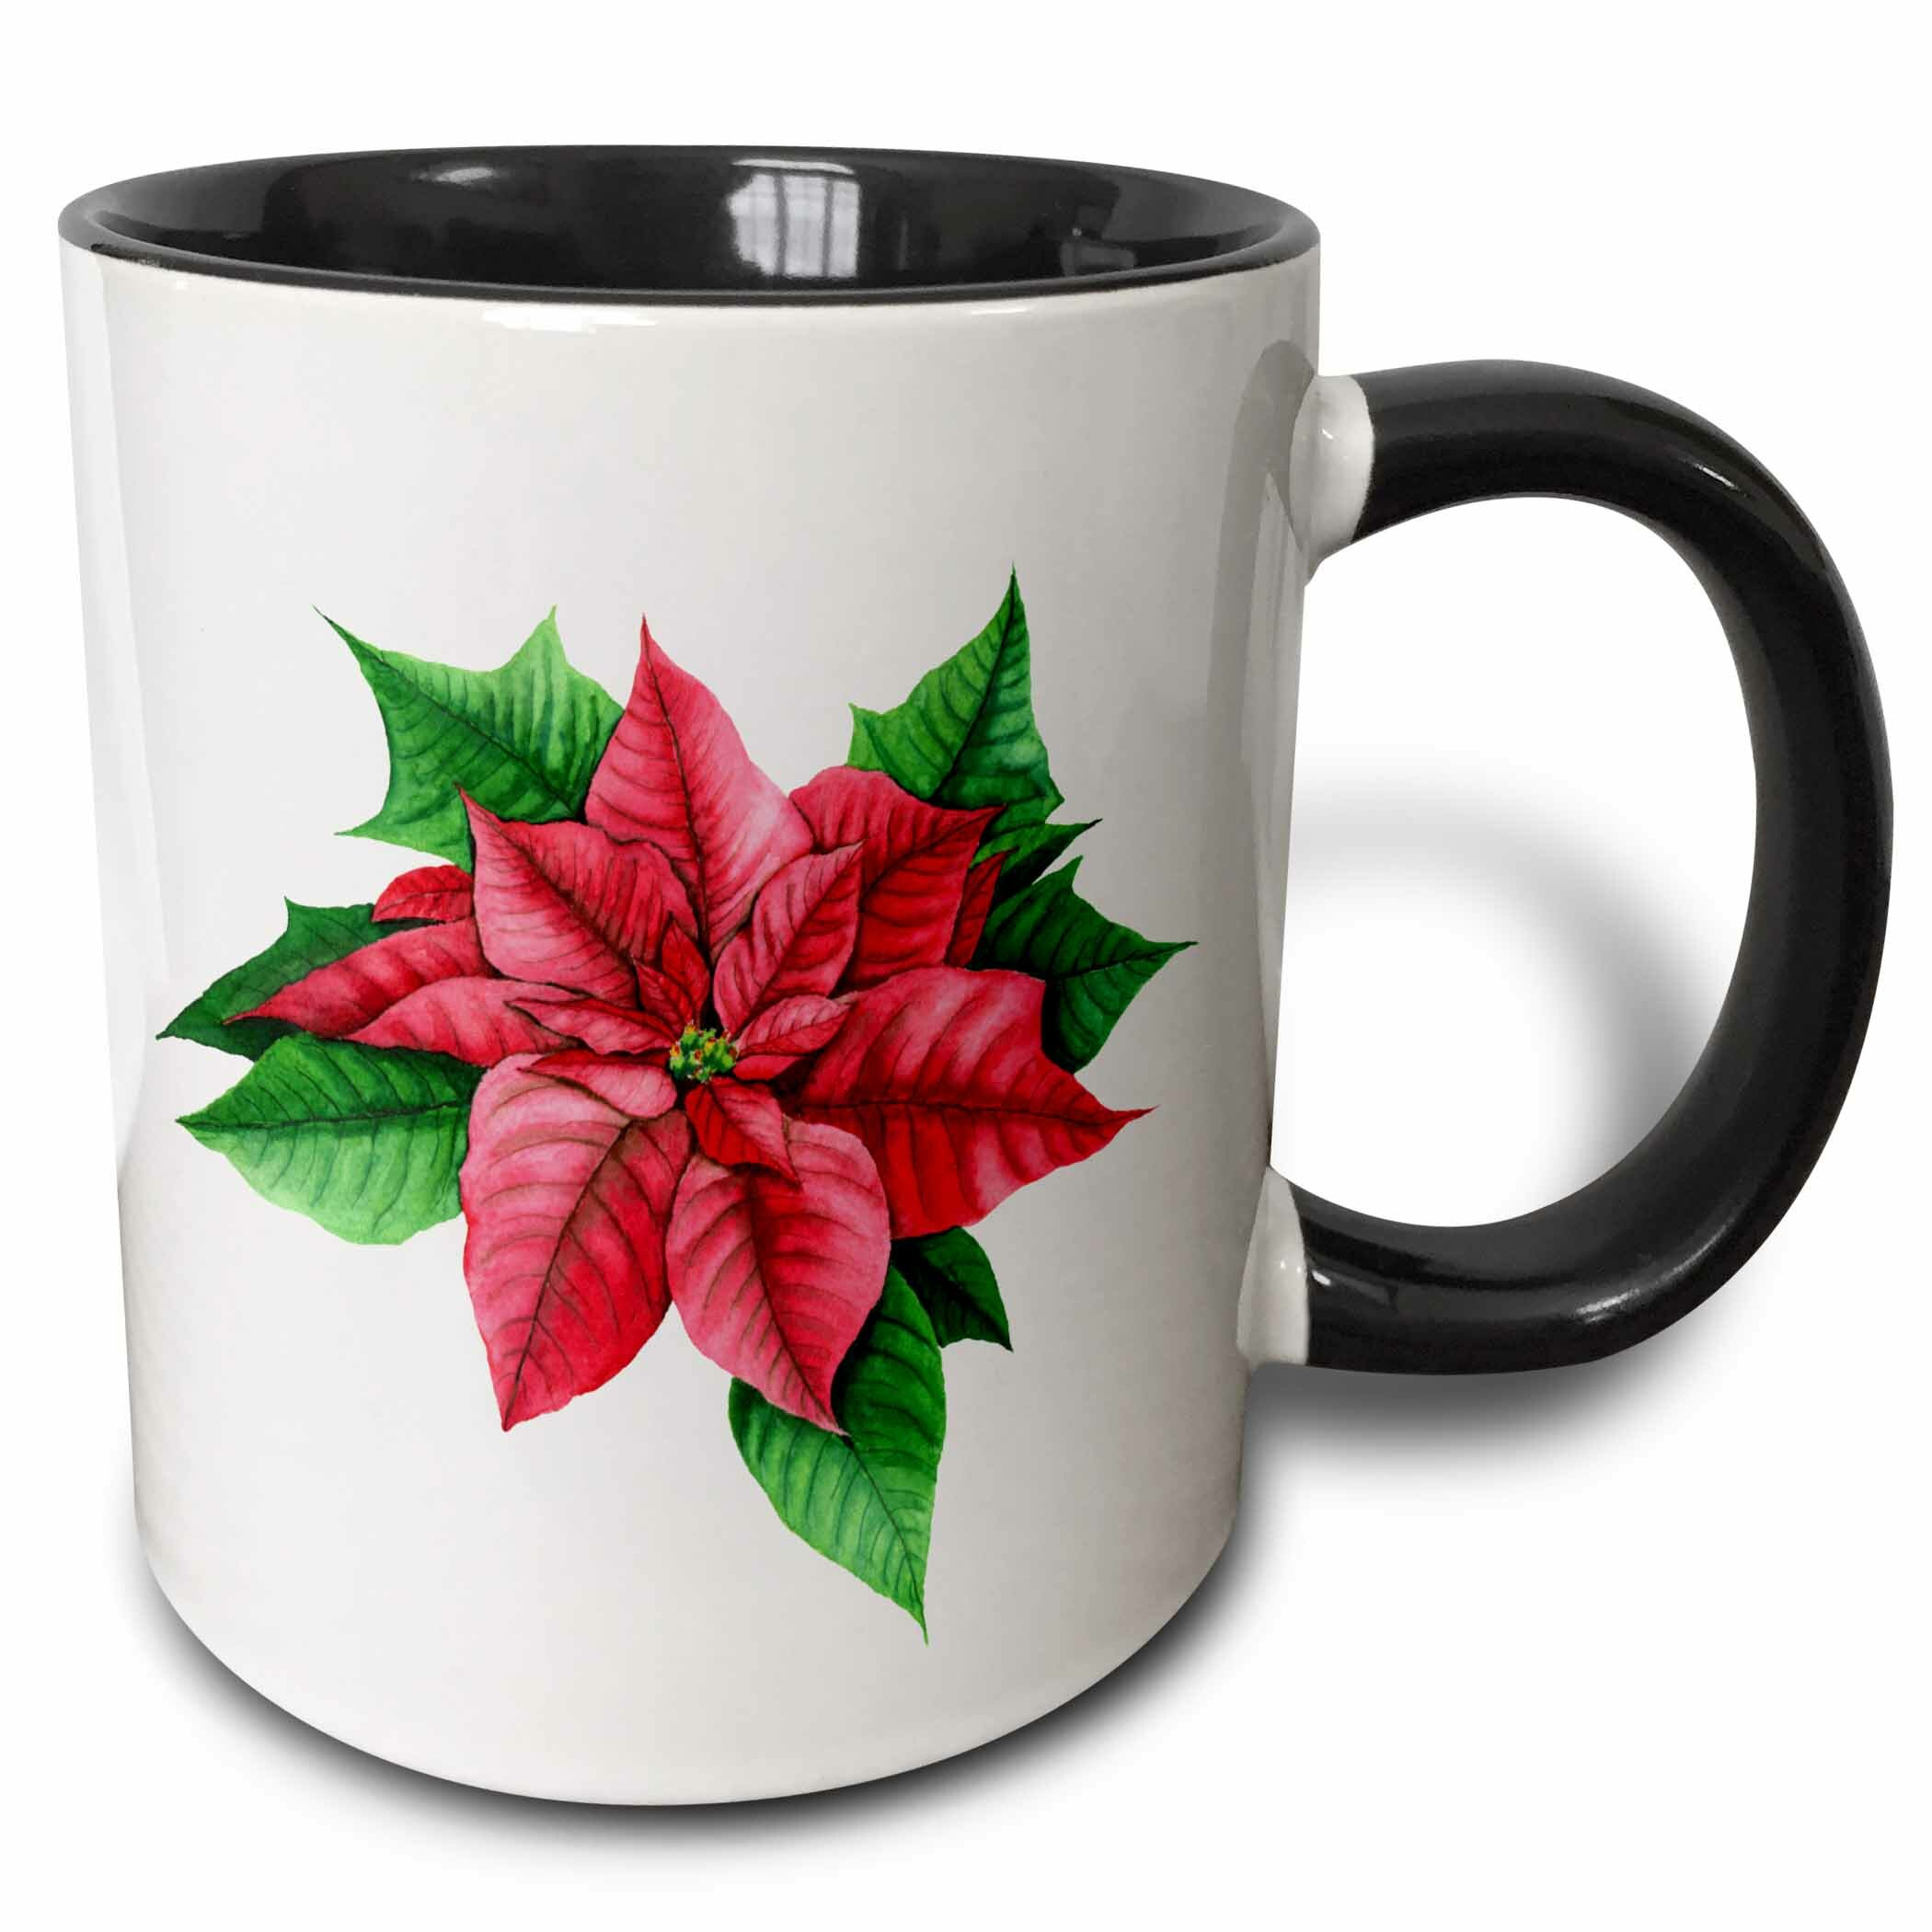 The Holiday Aisle Pretty Image Of Poinsettia Flower Illustration Coffee Mug Wayfair